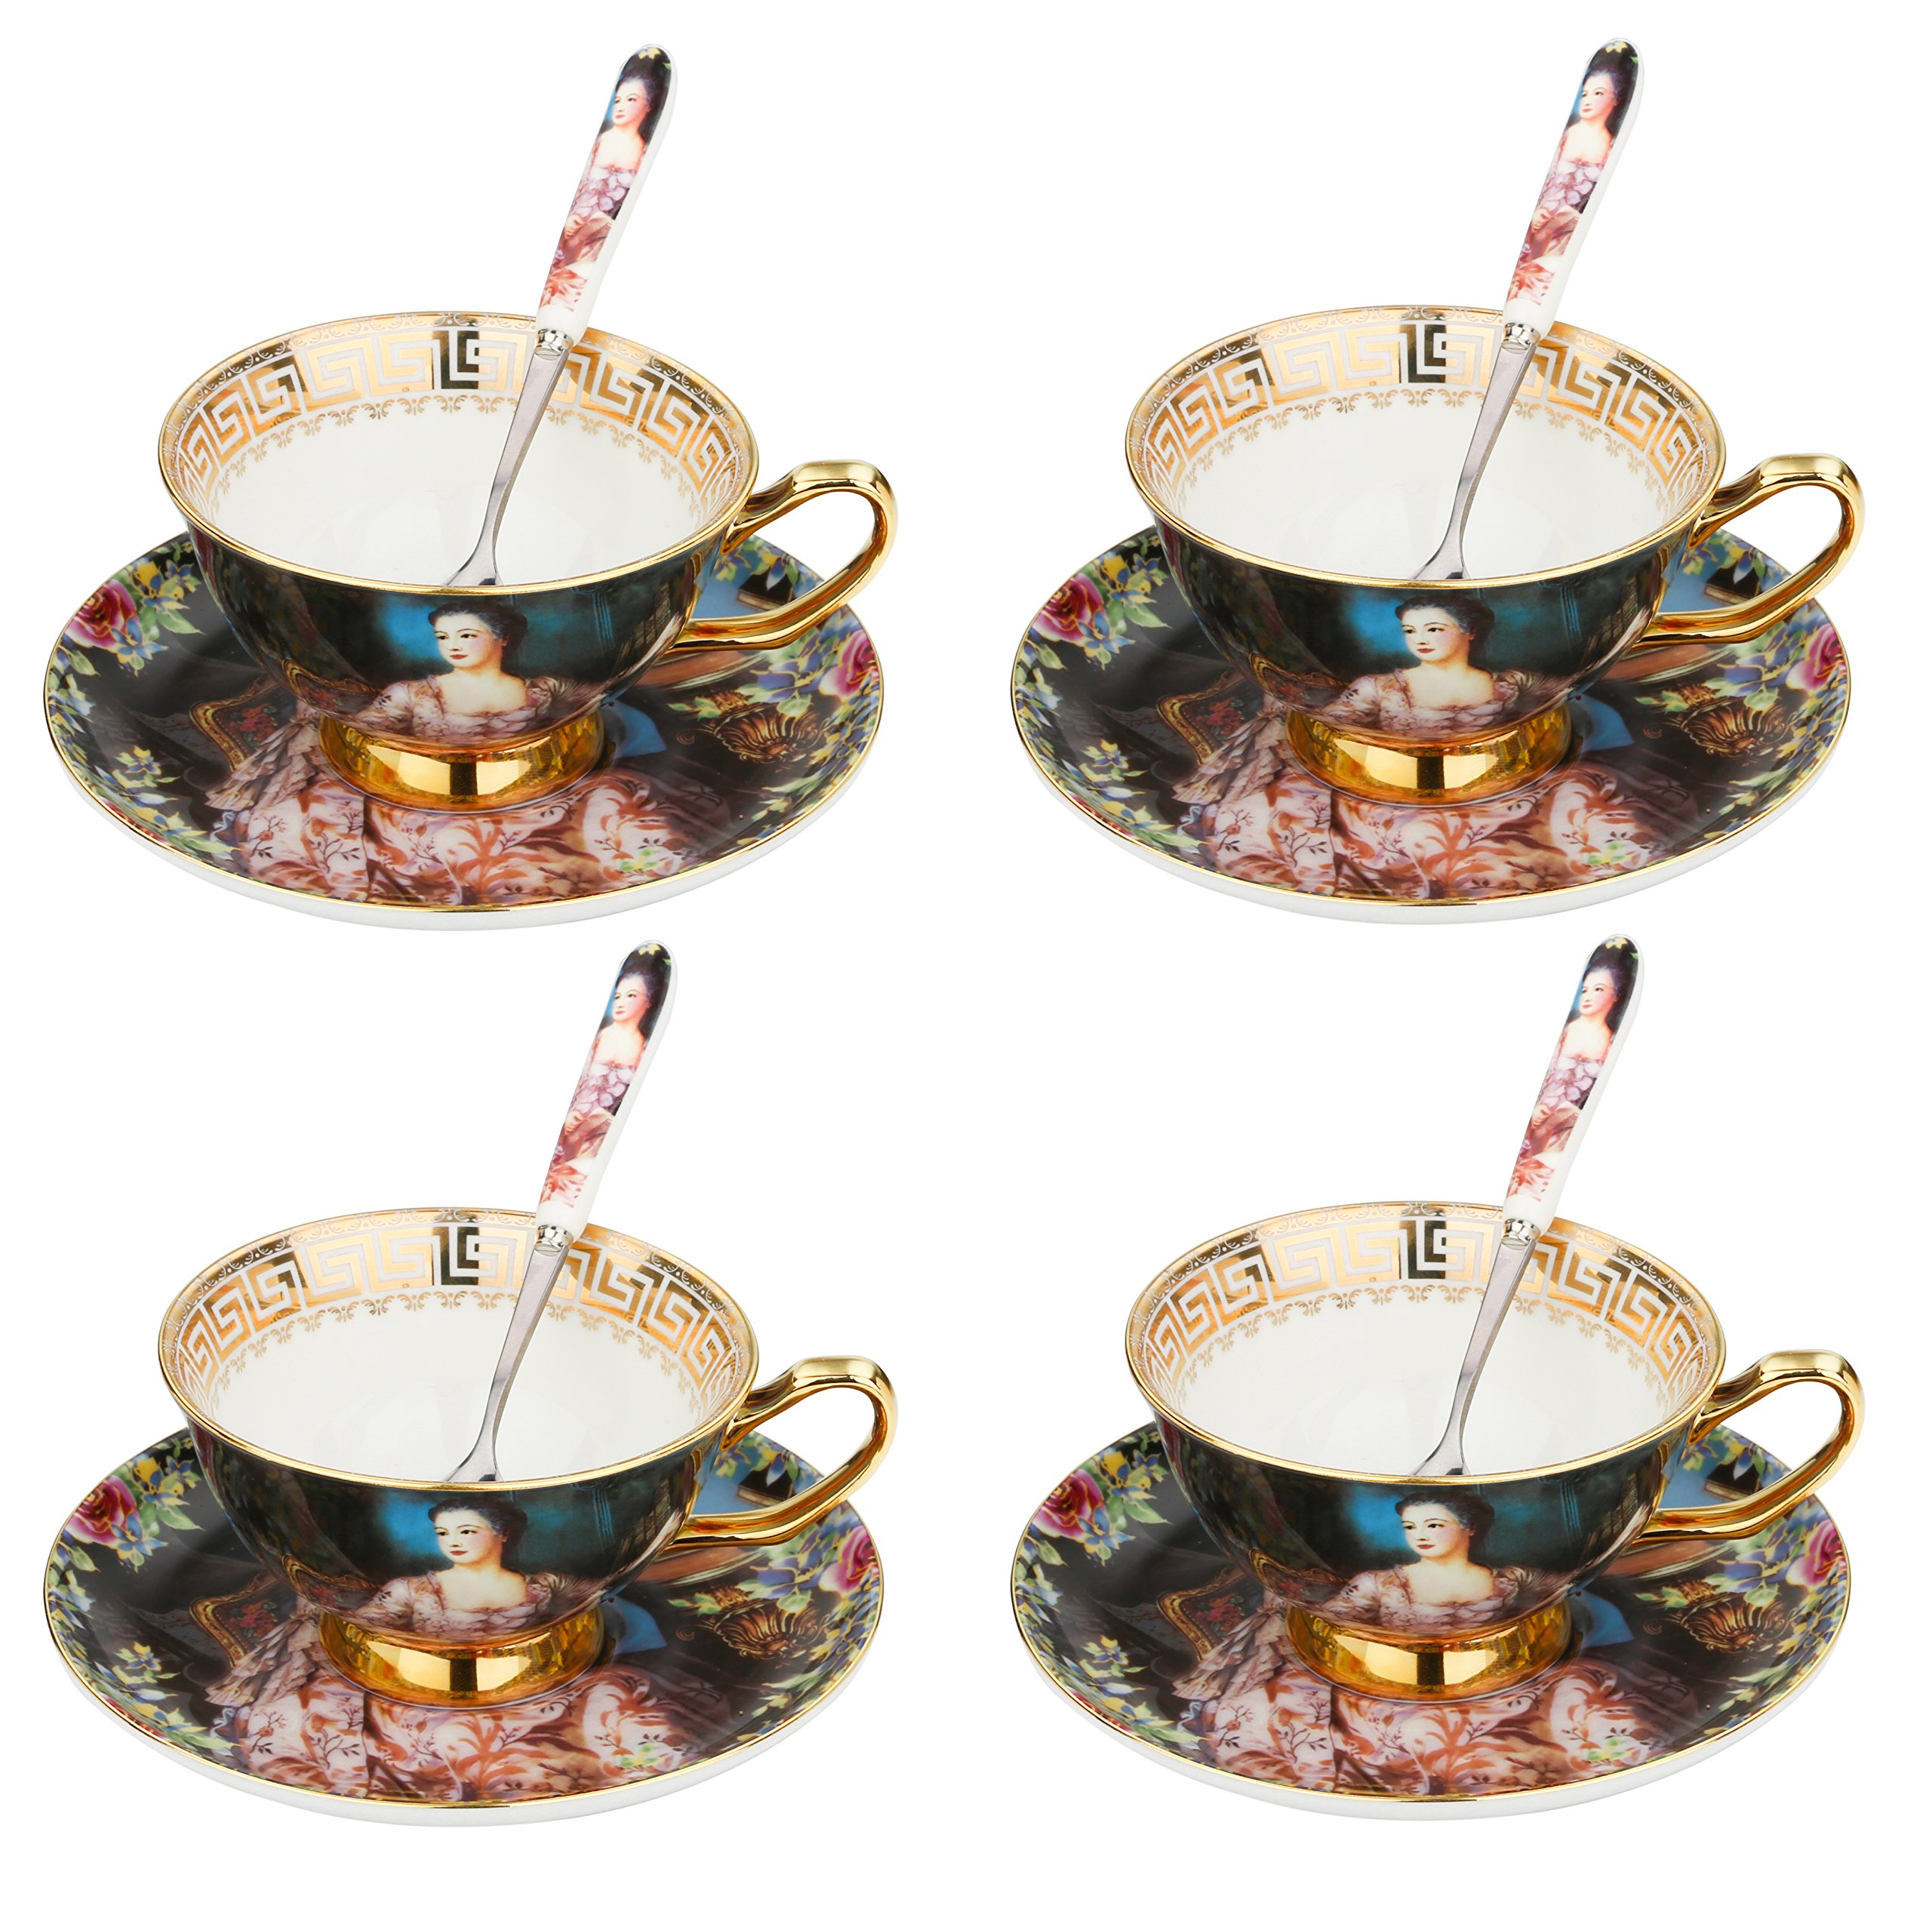 ARTVIGOR Queen Oil Painting Coffee Serving Set, New Bone China Gold Rimmed Cup & Saucer Sets with Spoon for 4